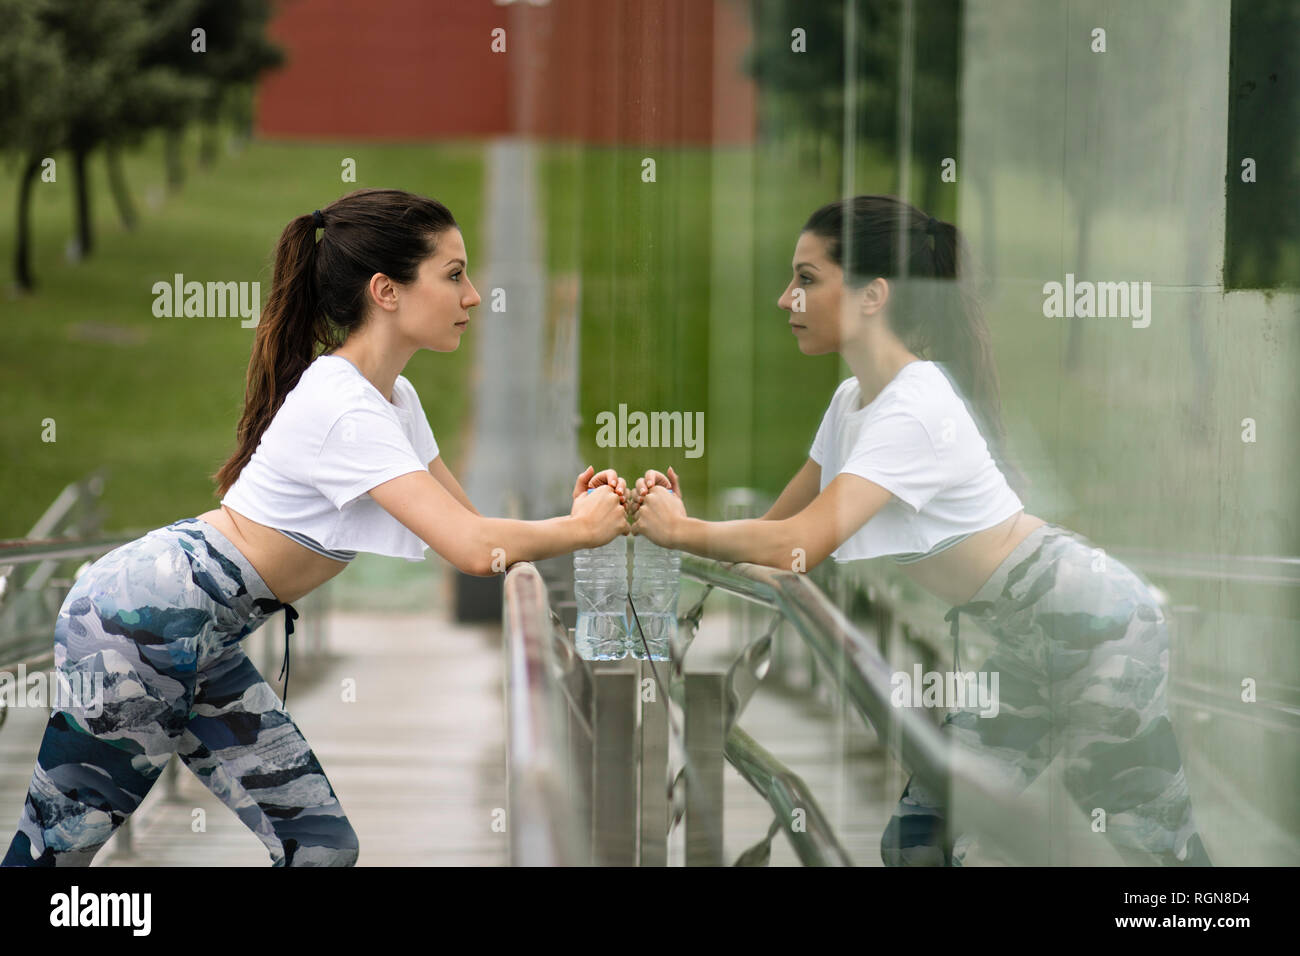 Young woman doing stretching exercise reflected in glass facade - Stock Image